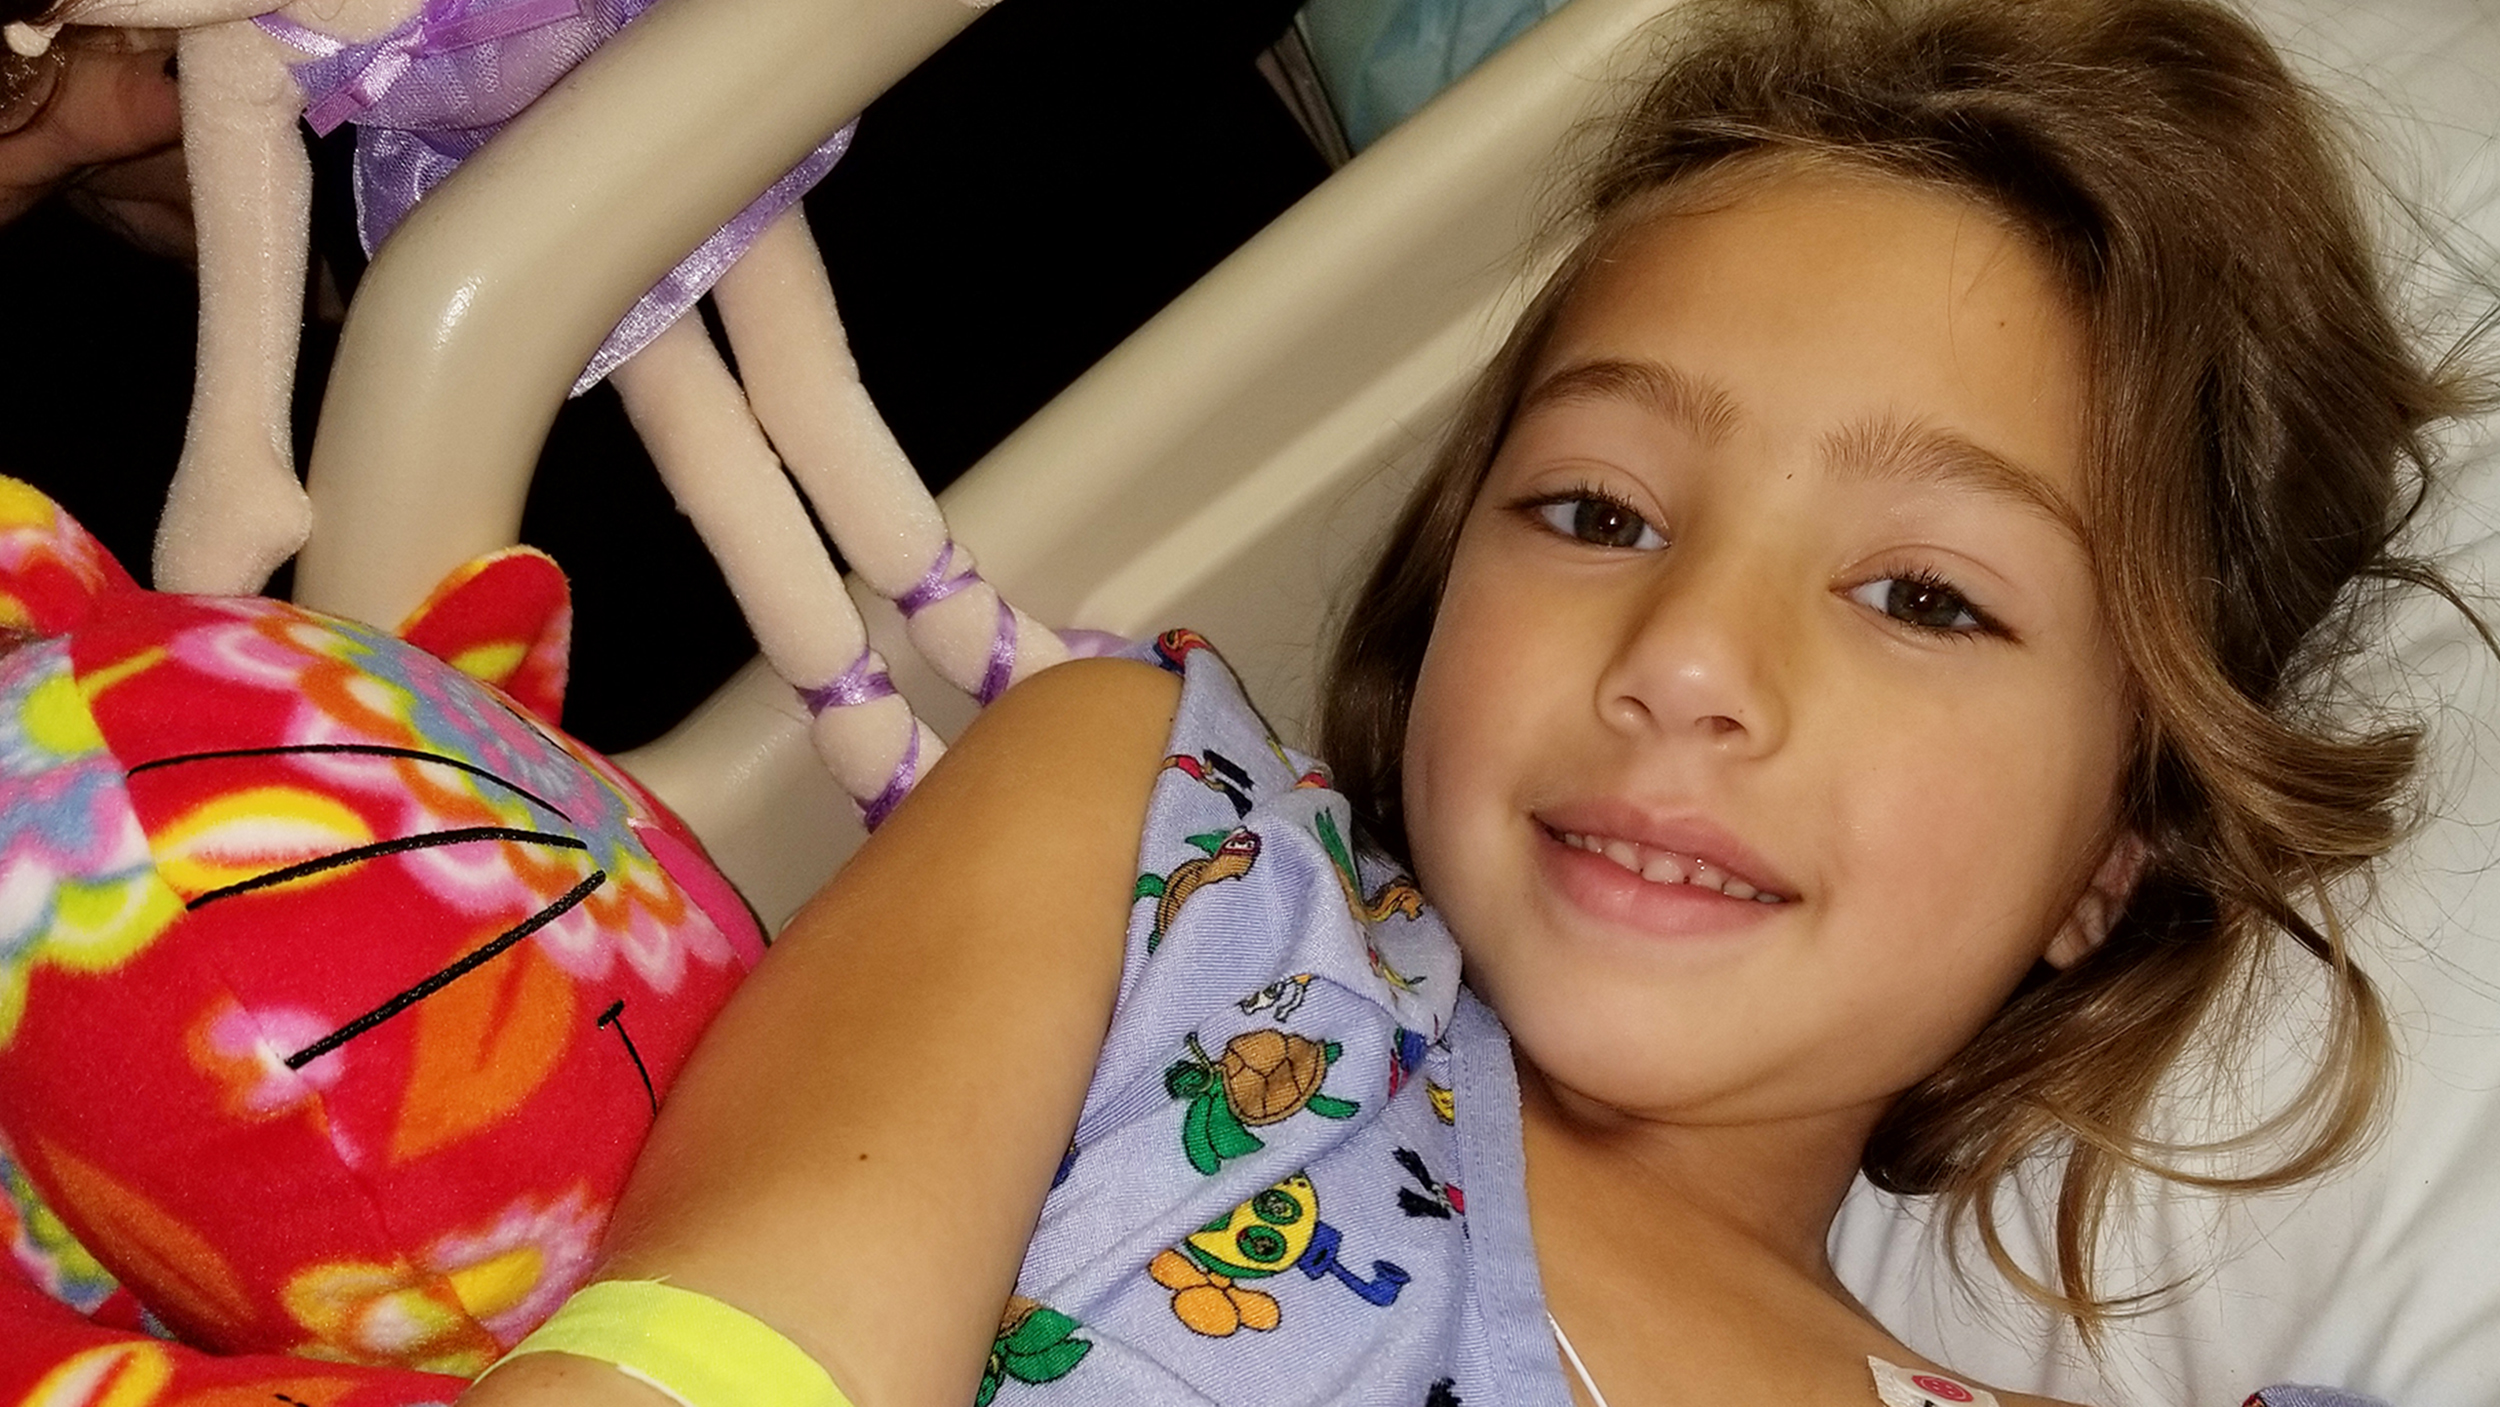 5-year-old Texas girl recovering from frightening attack by venomous rattlesnake